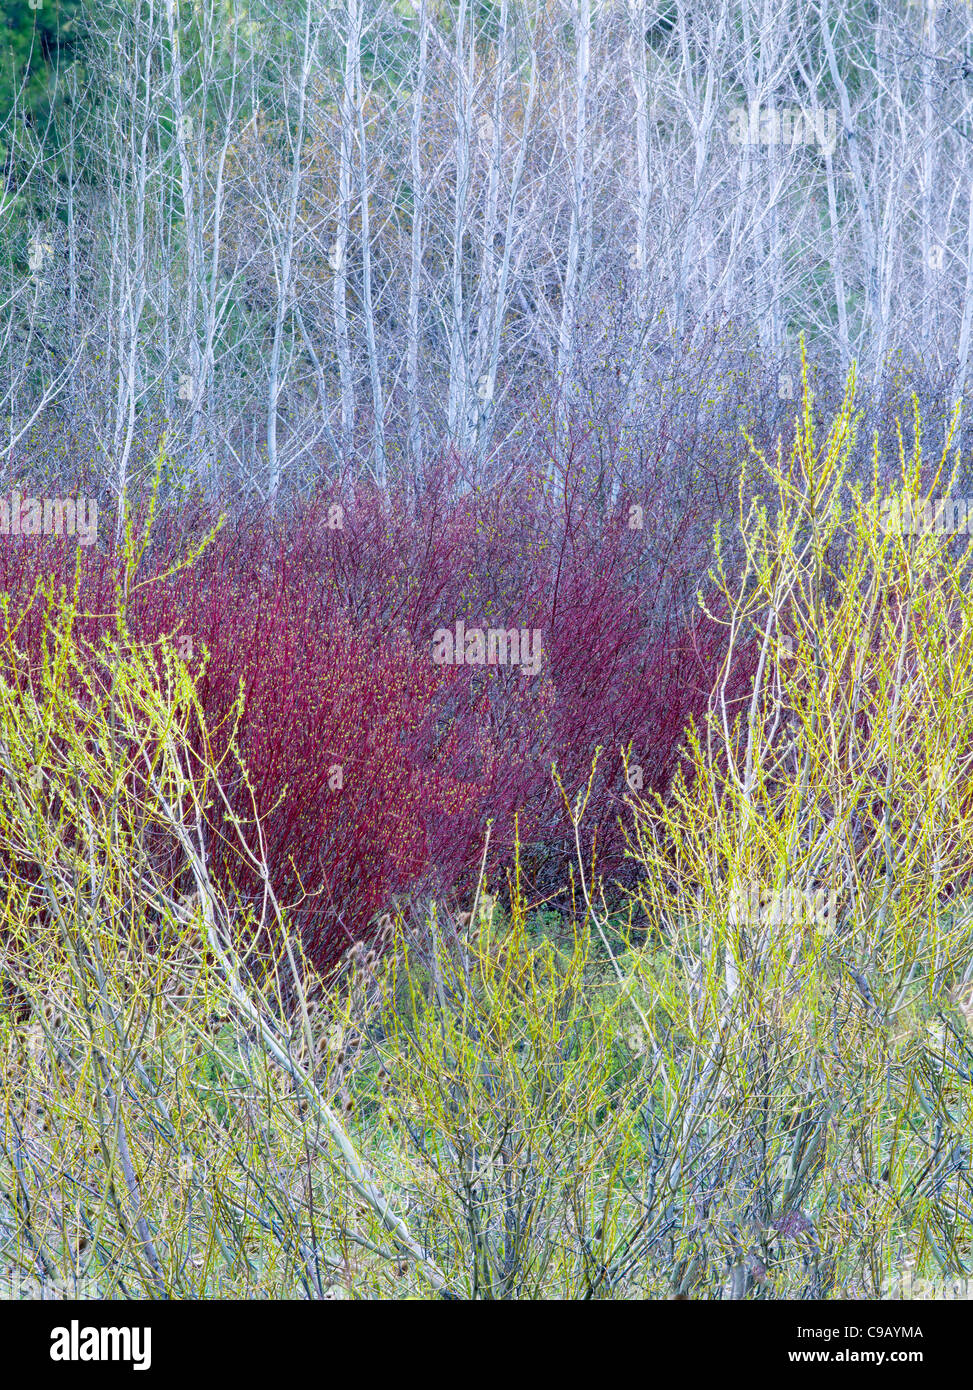 Willows in early spring with aspen trees. . Near John Day, Oregon - Stock Image